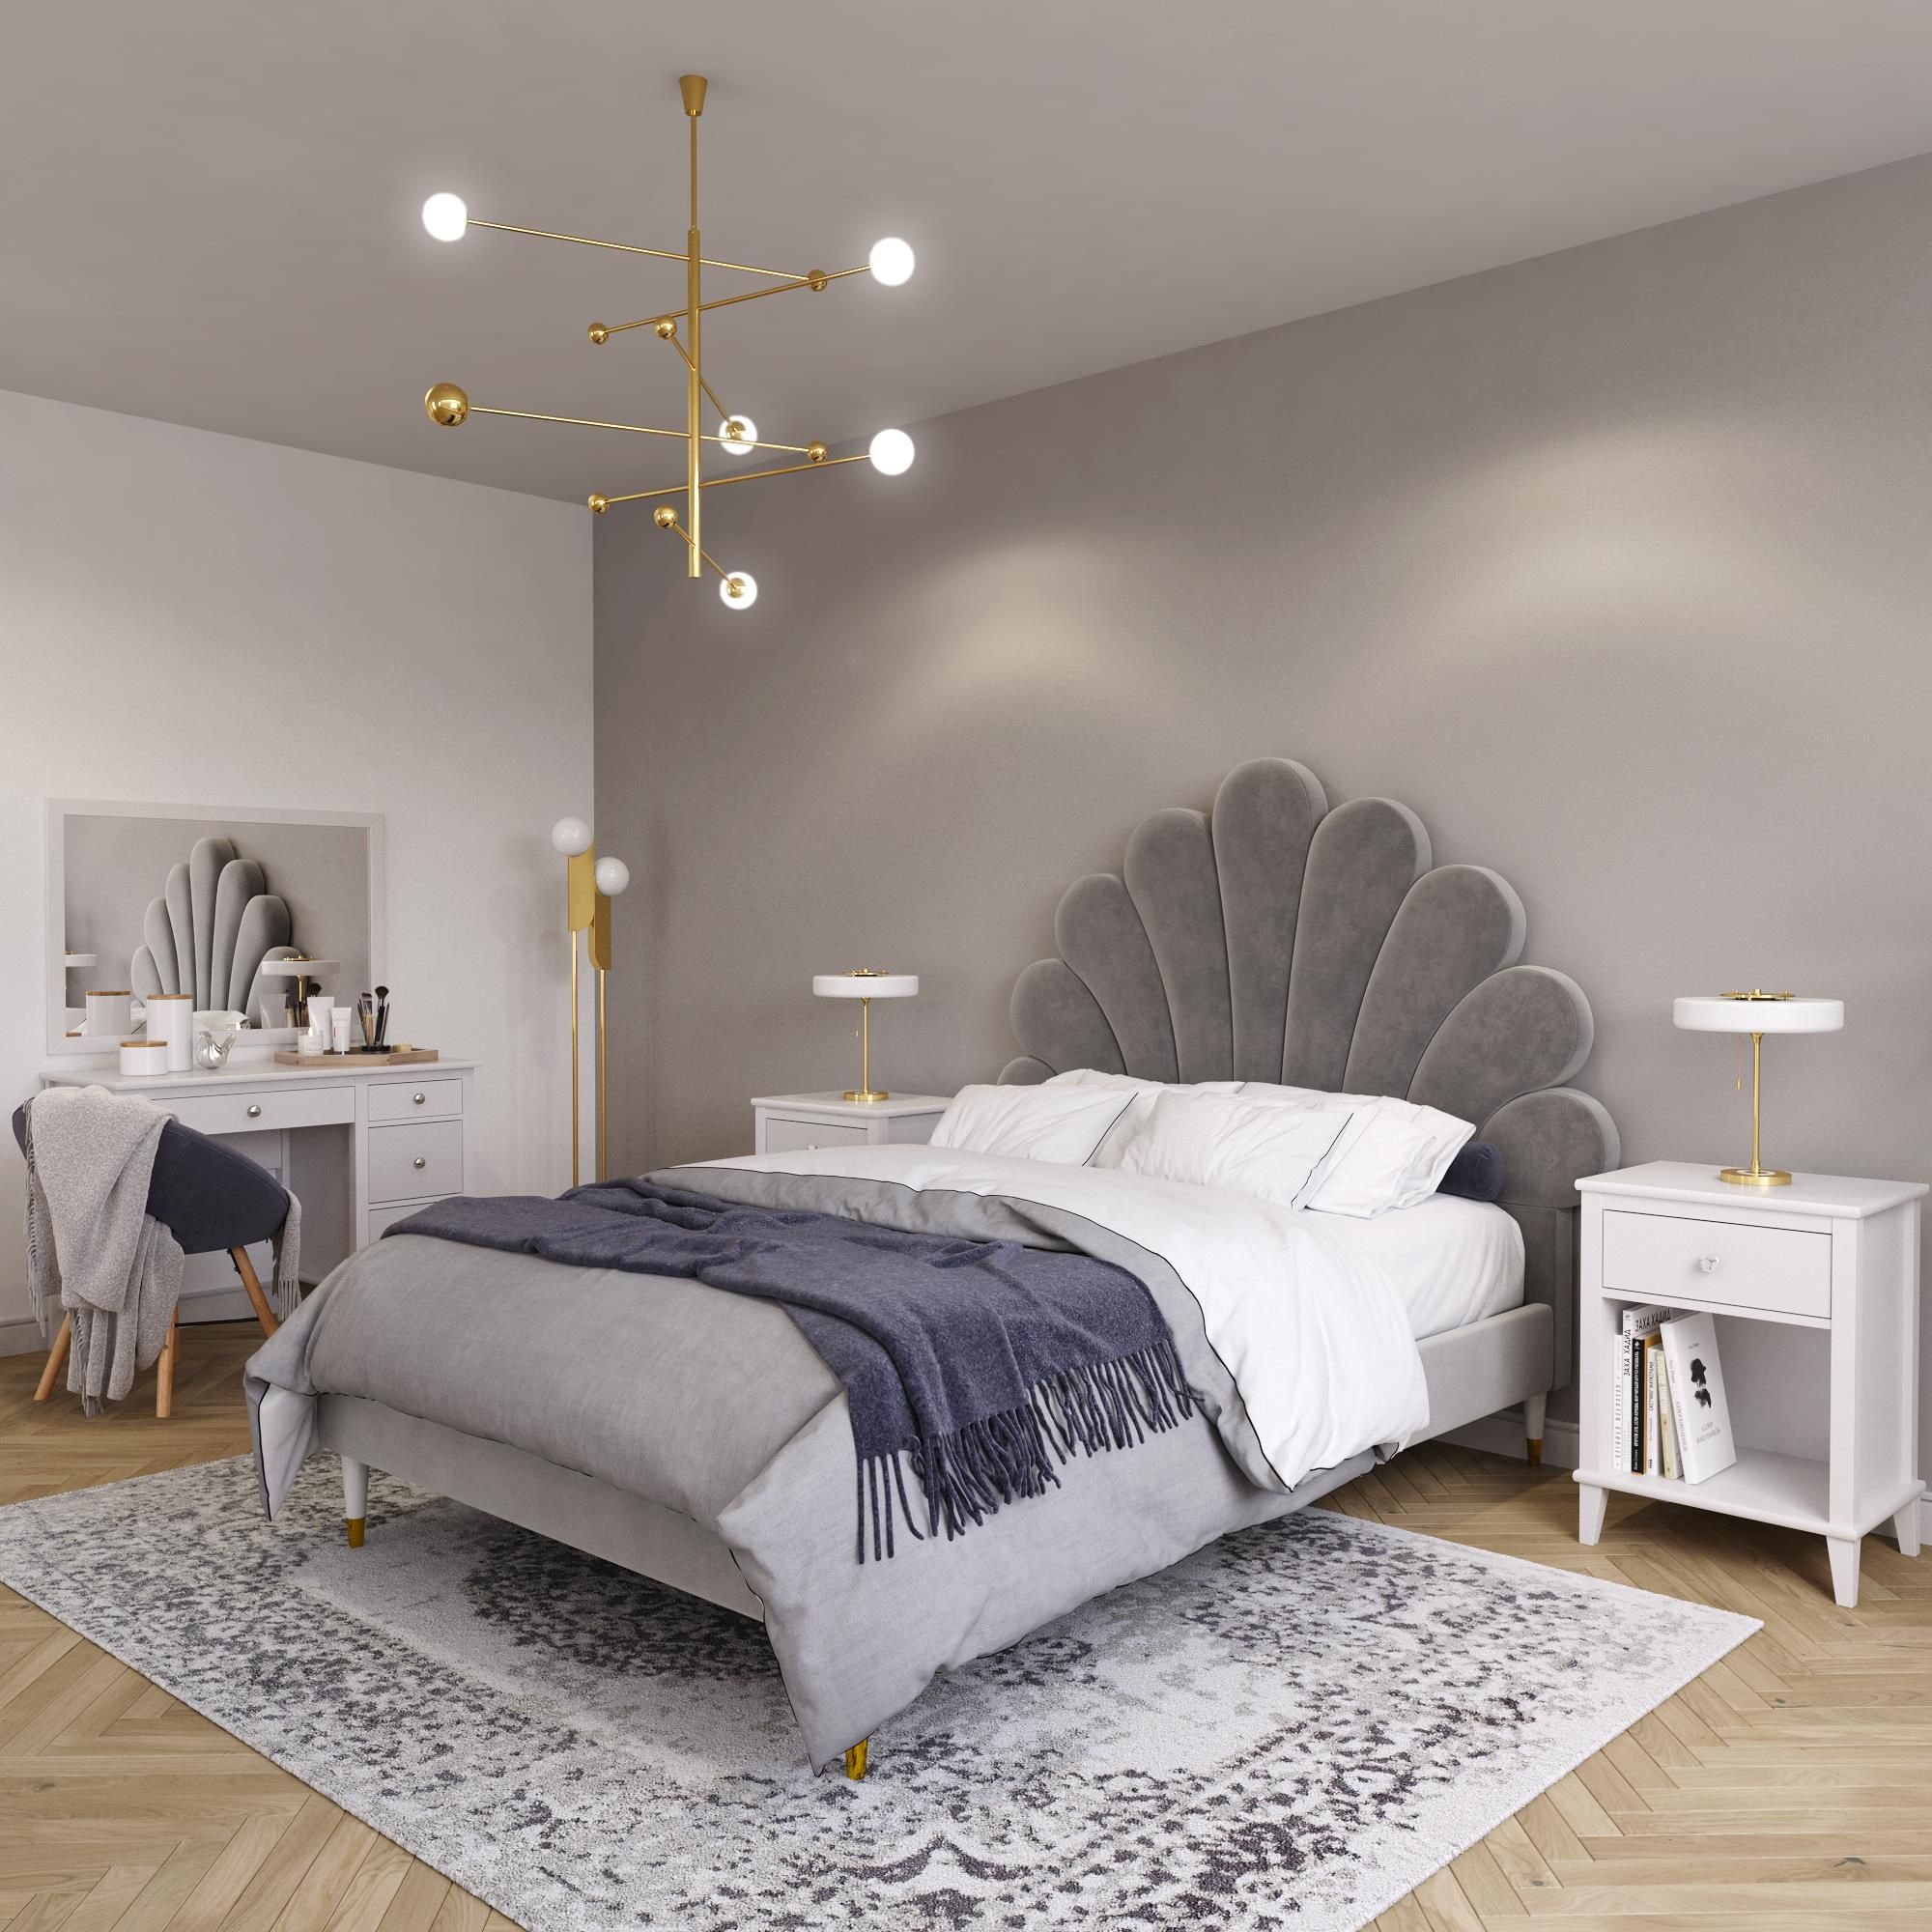 Home Full size upholstered bed, Home, Furniture